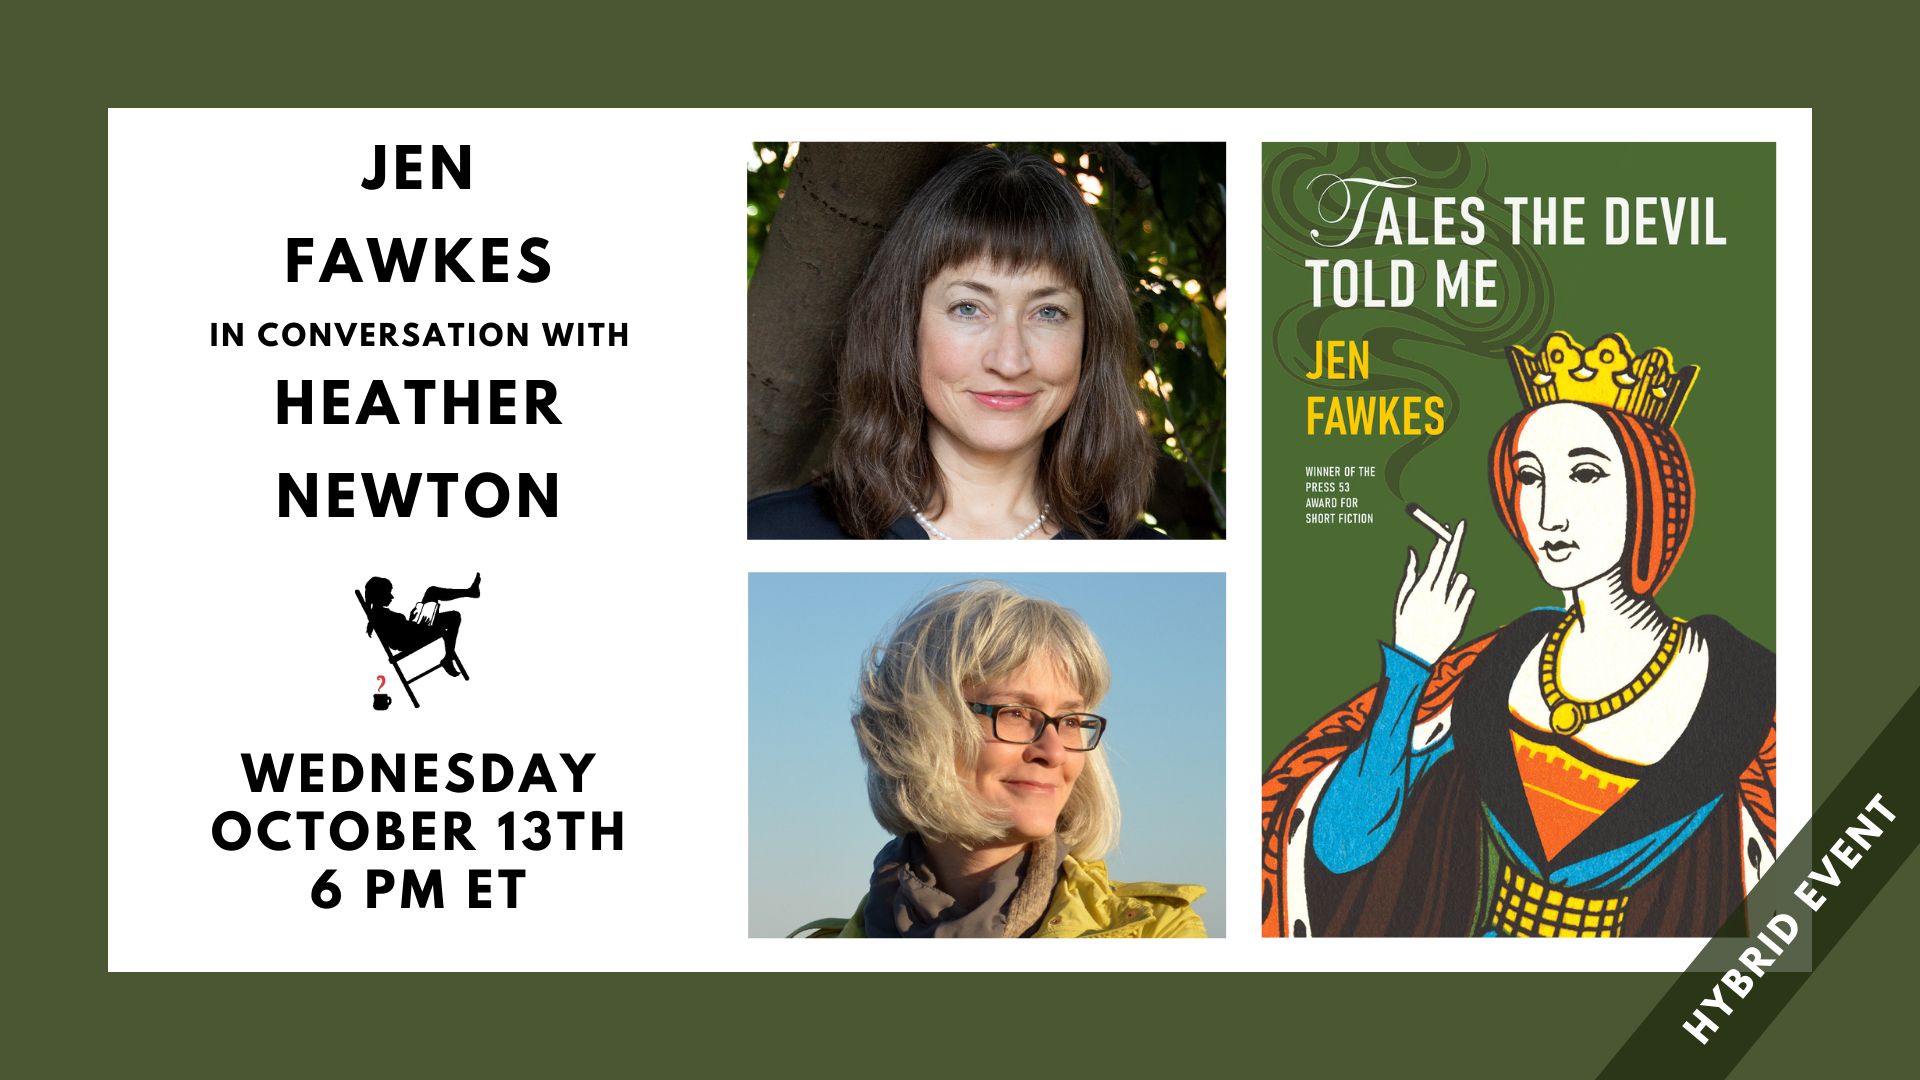 Image shows a green border with a white box containing the text: Jen Fawkes in conversation with Heather Newton Wednesday, October 13th at 6 PM ET. Hybridl Event. Next to the text are photos of both people named and the cover of the featured book